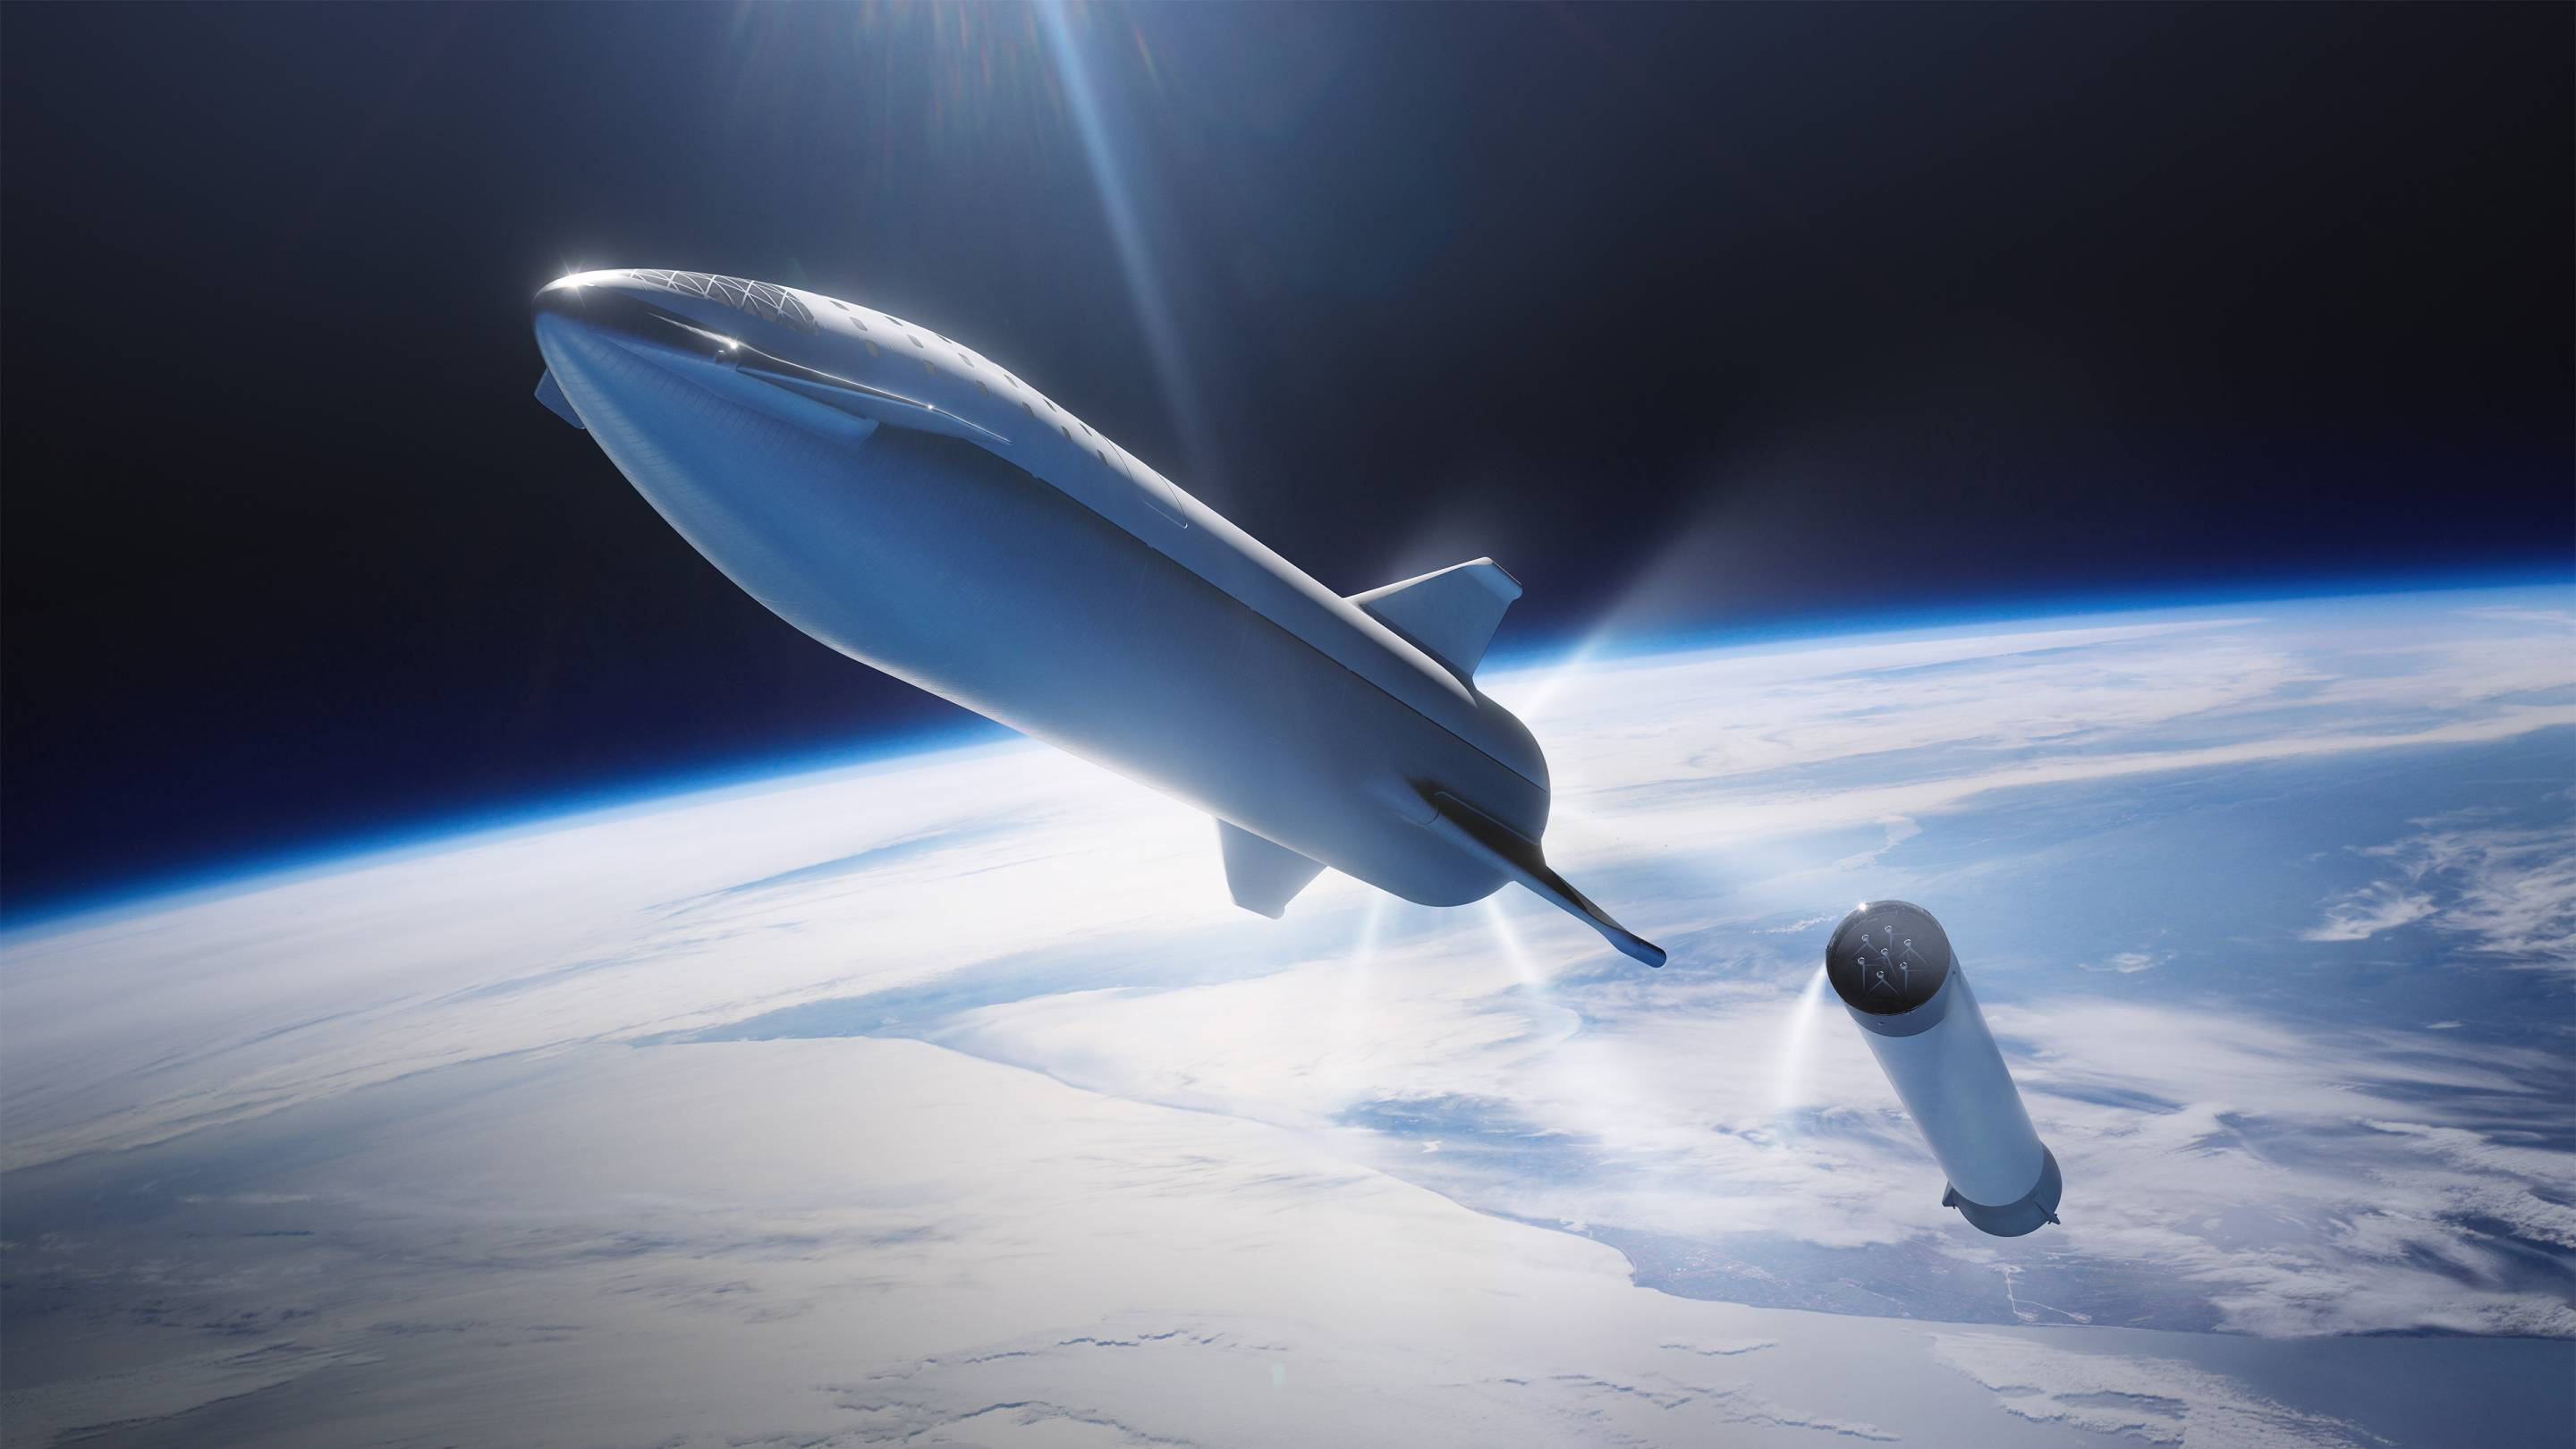 SpaceX Starship rocket prototype